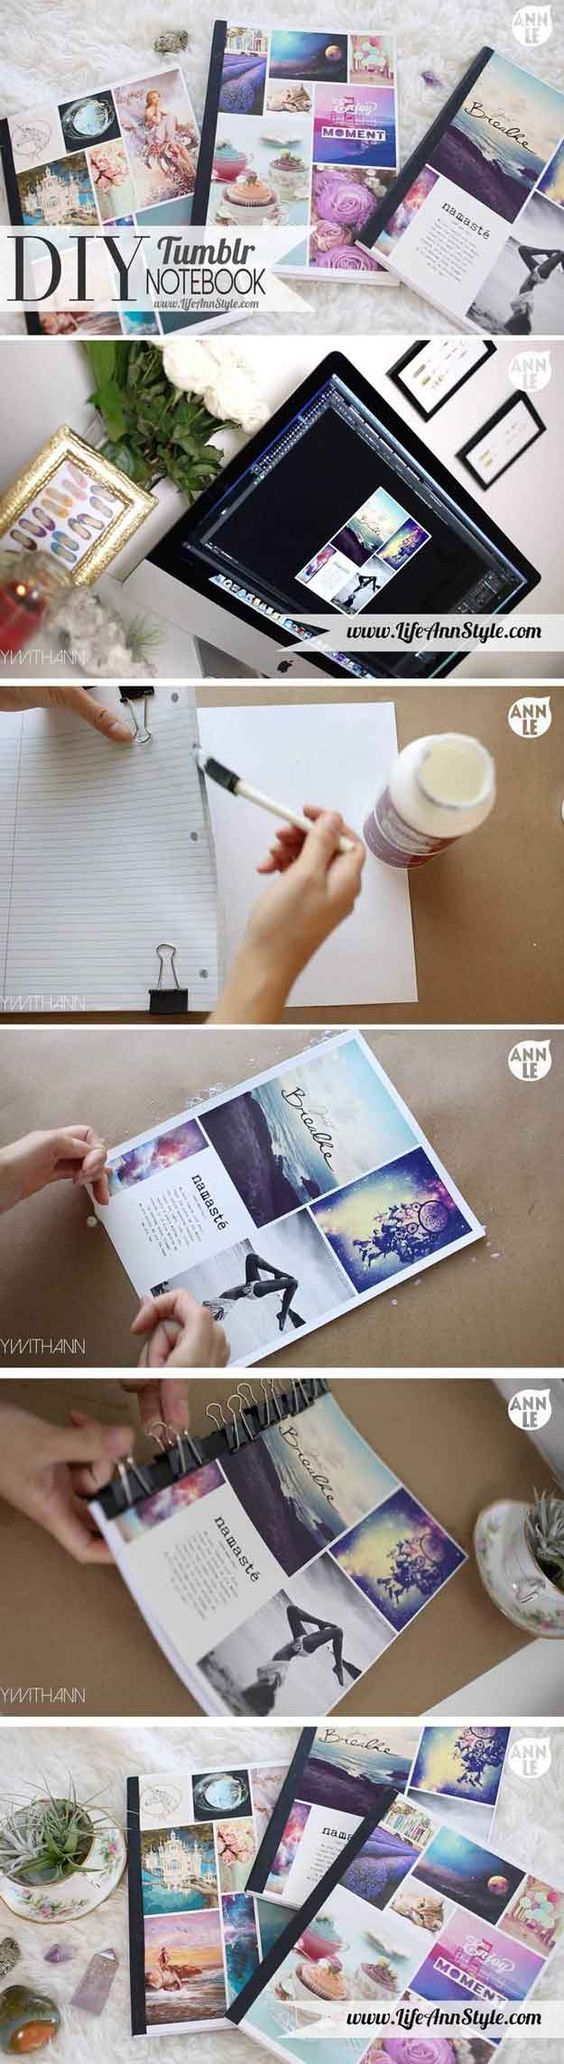 Fun DIY Projects for Teens | DIY Tumblr Notebook by DIY Ready at http://diyready.com/27-easy-diy-projects-for-teens-who-love-to-craft/: